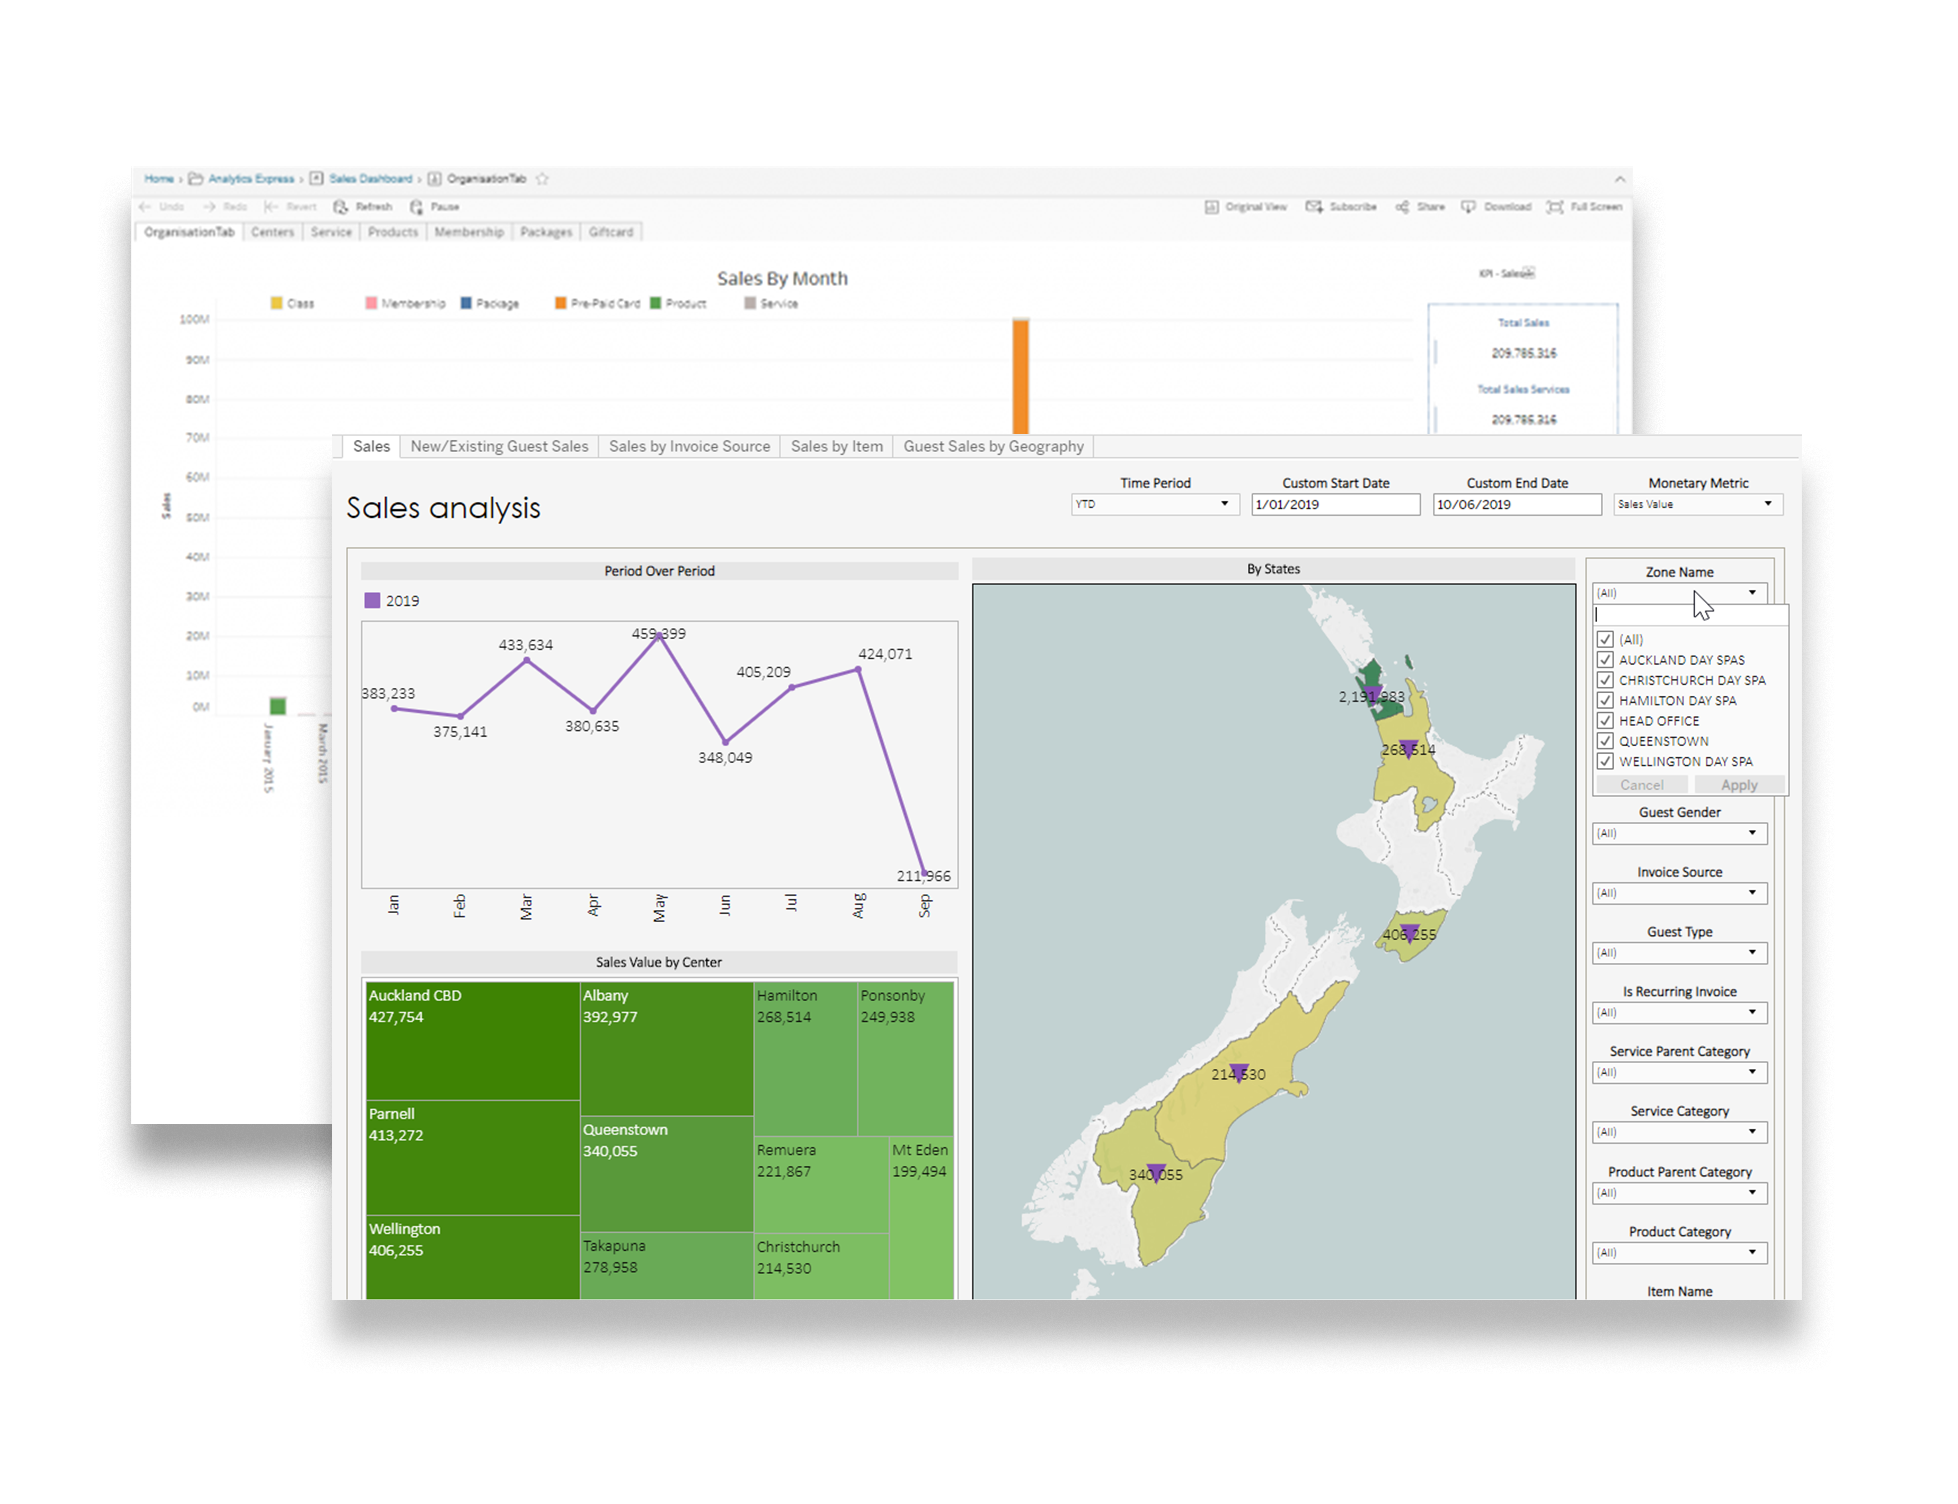 Dive deep into core analytics and take better business decisions